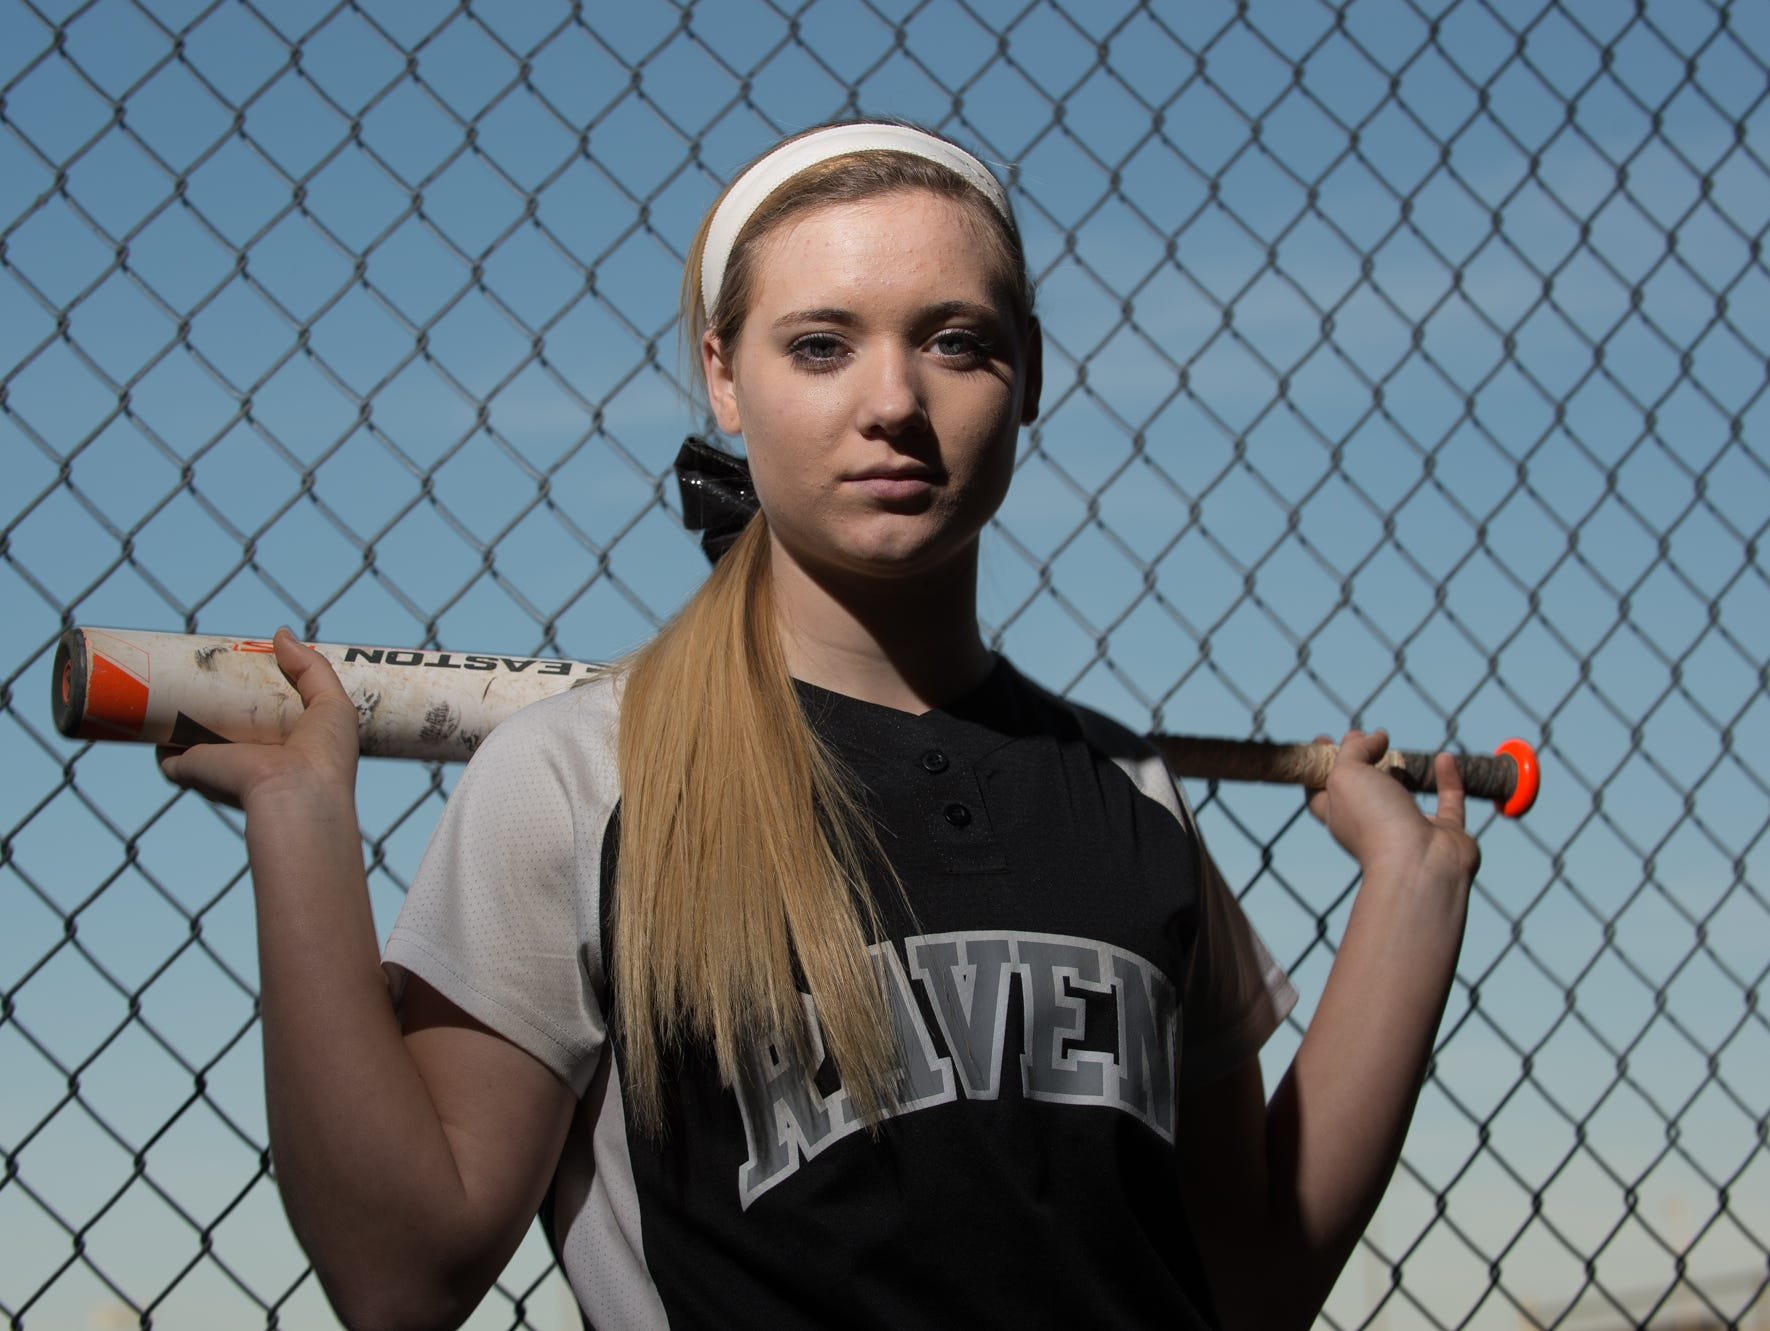 Sussex Tech catcher Shannon Lord went 2-for-3 with two doubles in the Ravens' come-from-behind, 7-6 win over Sussex Central last Tuesday.